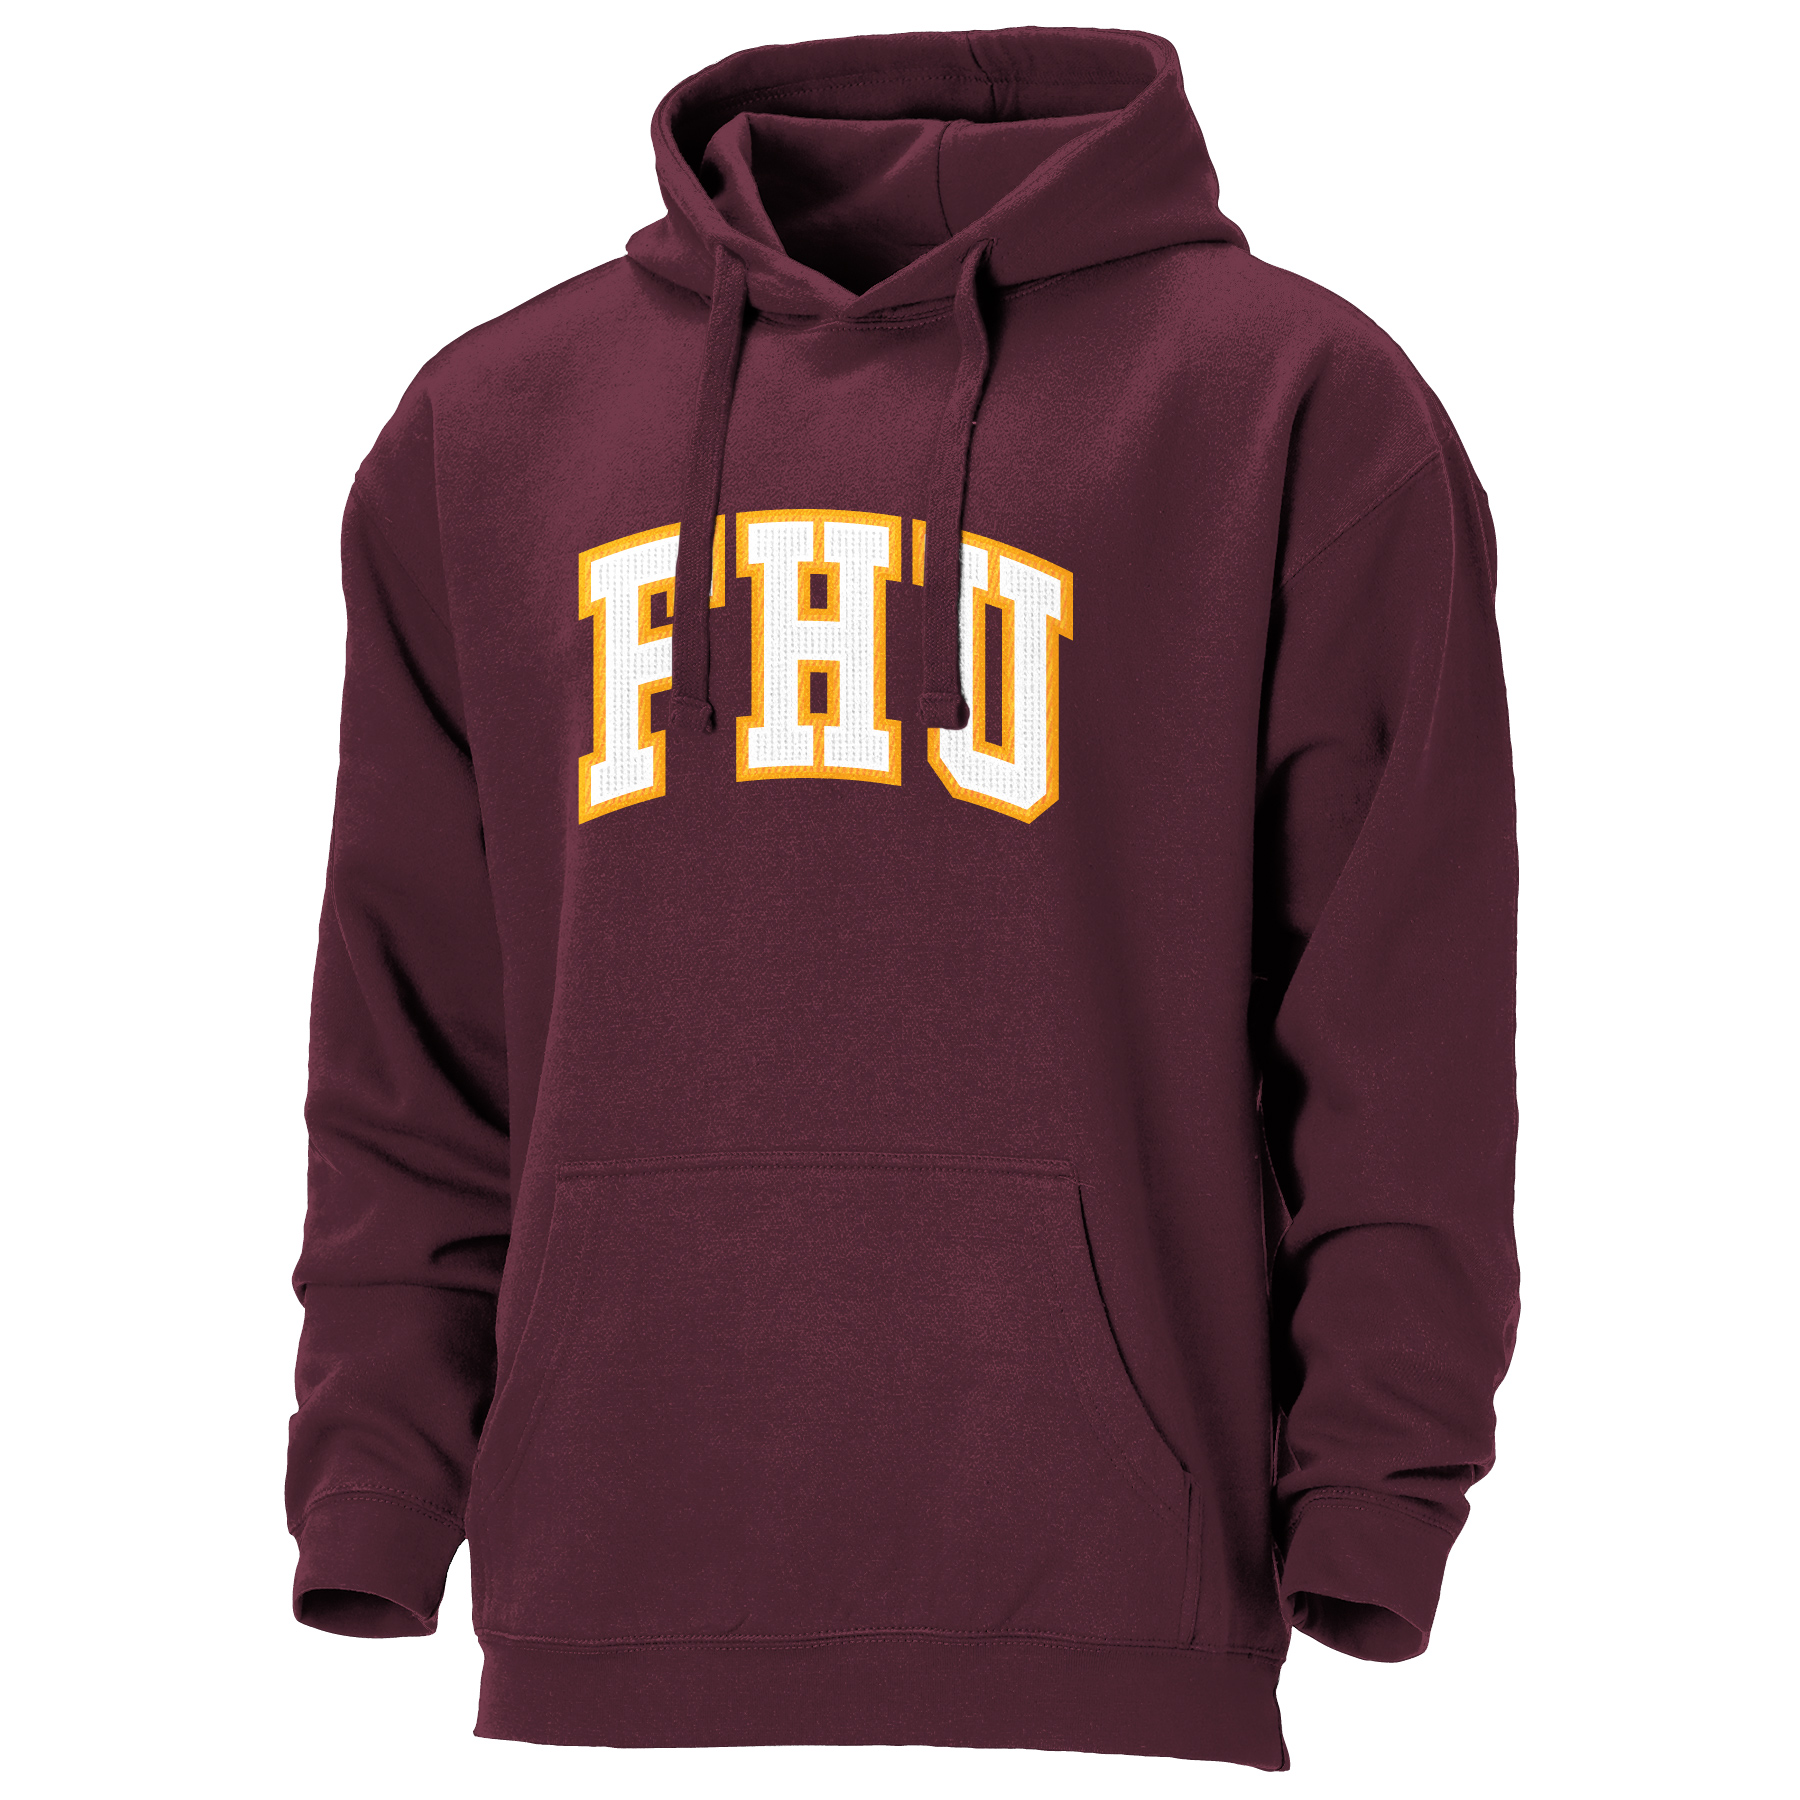 FHU Embroidered Hoodie